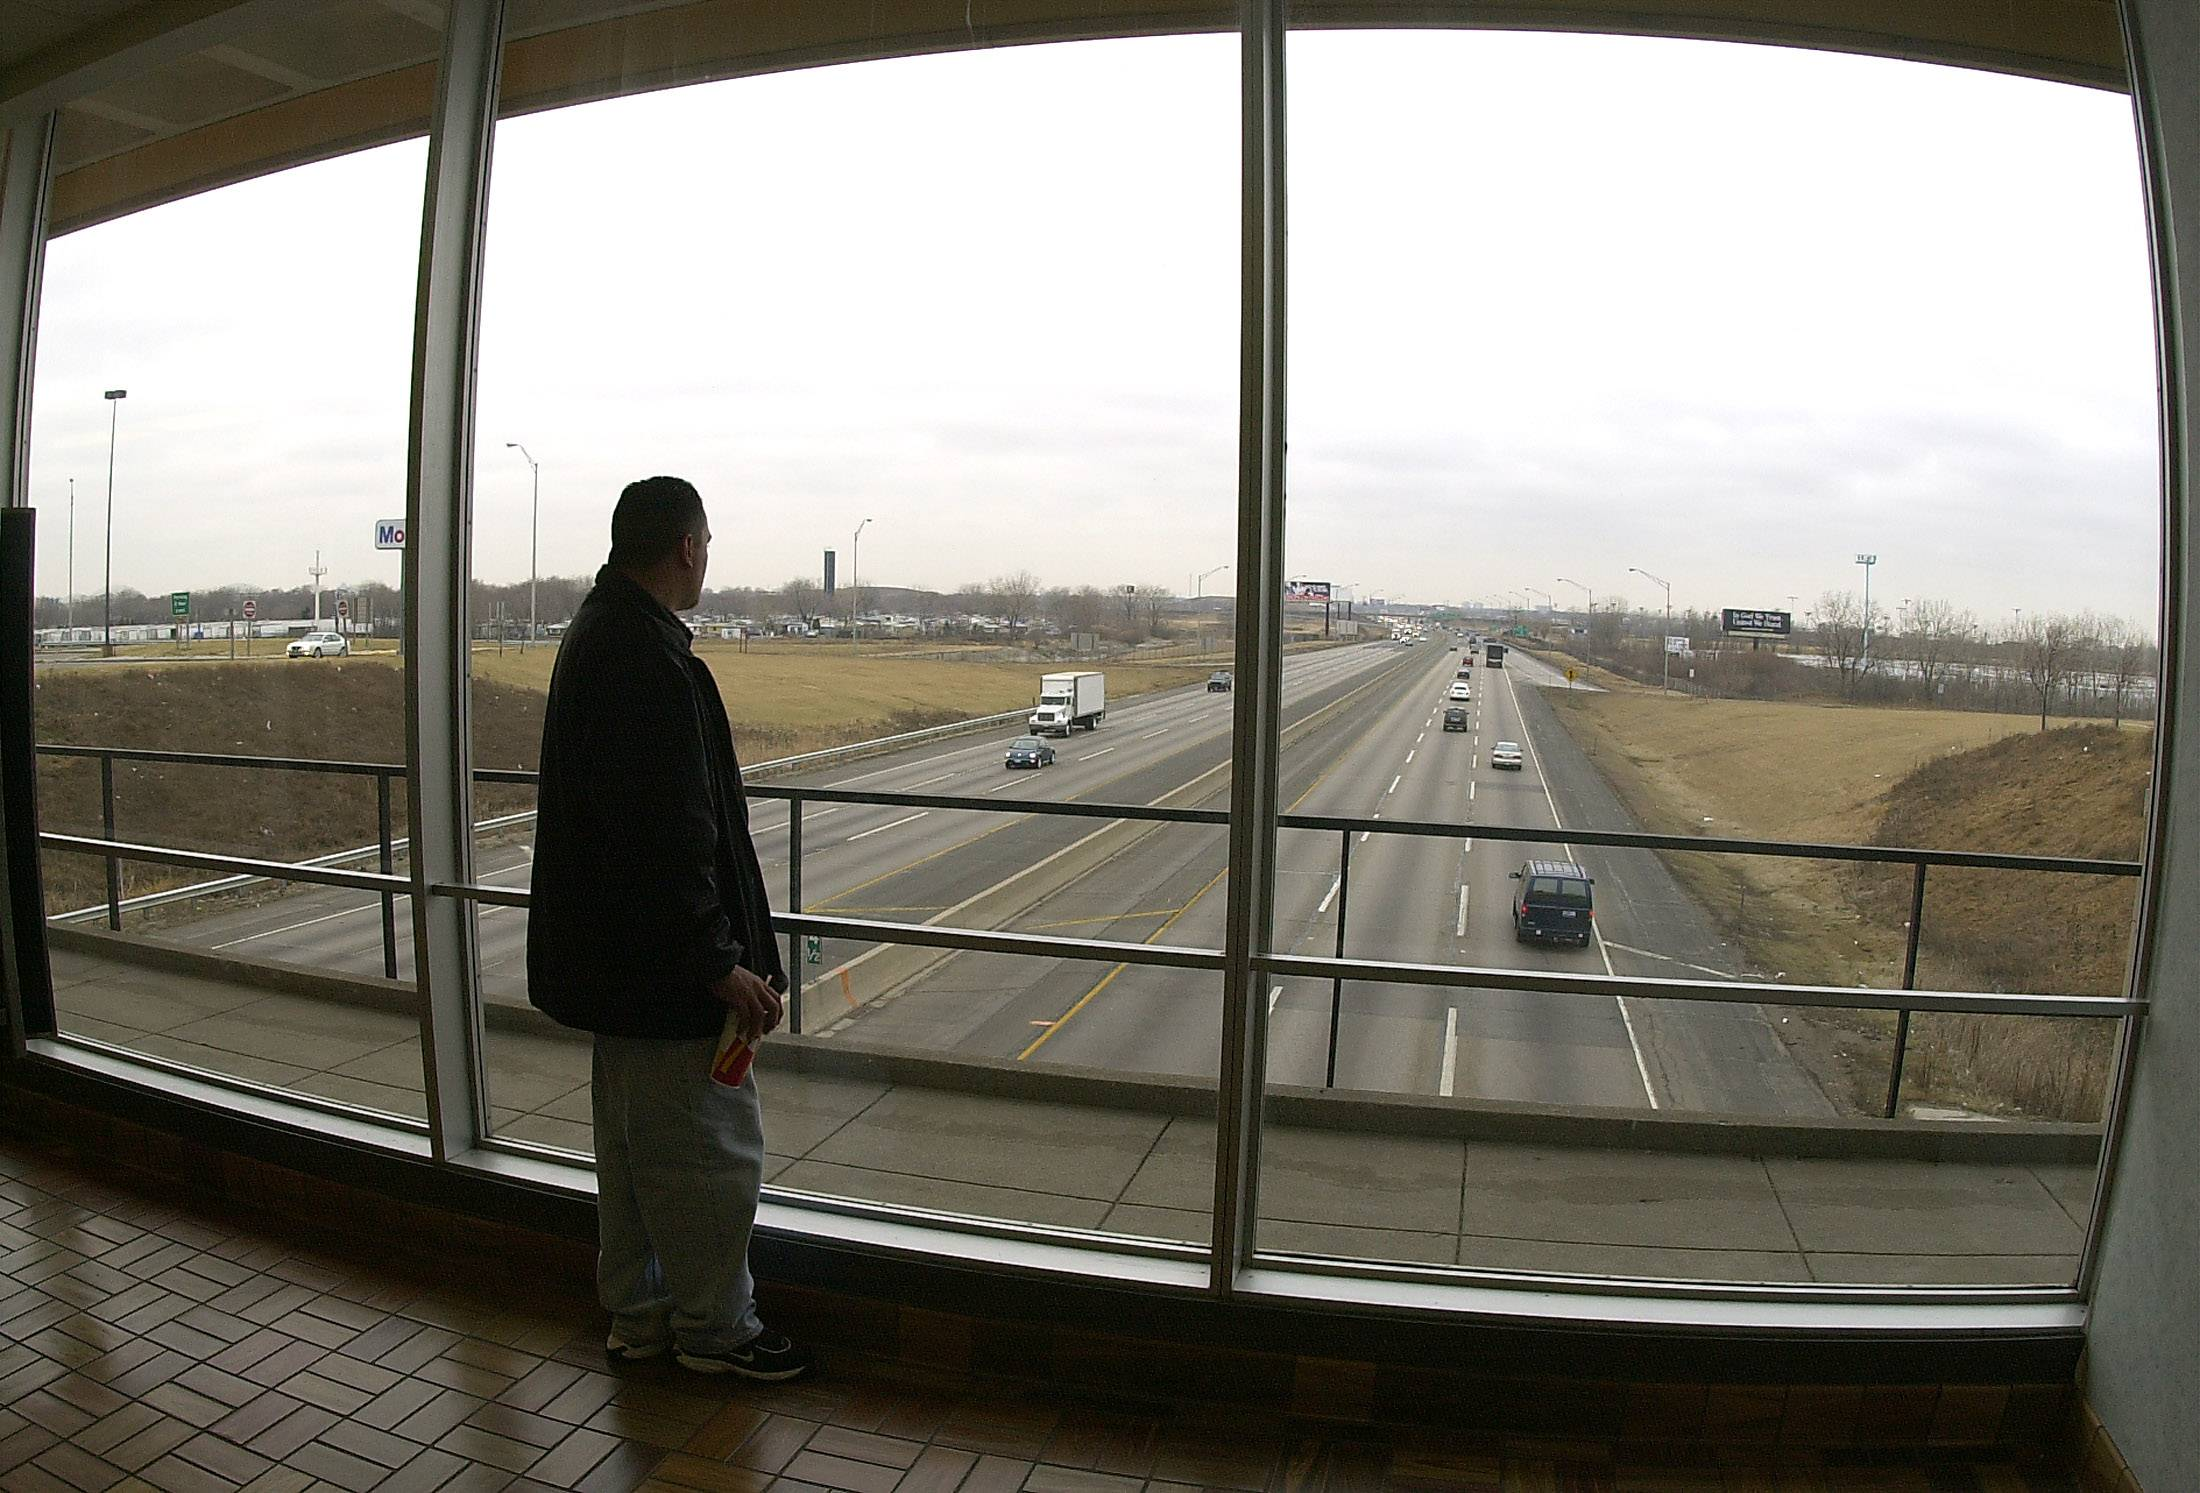 Looking like a big movie screen to the world of transportation, Greg Carranza of Elgin waits to take his wife to O'Hare who works at United Airlines.